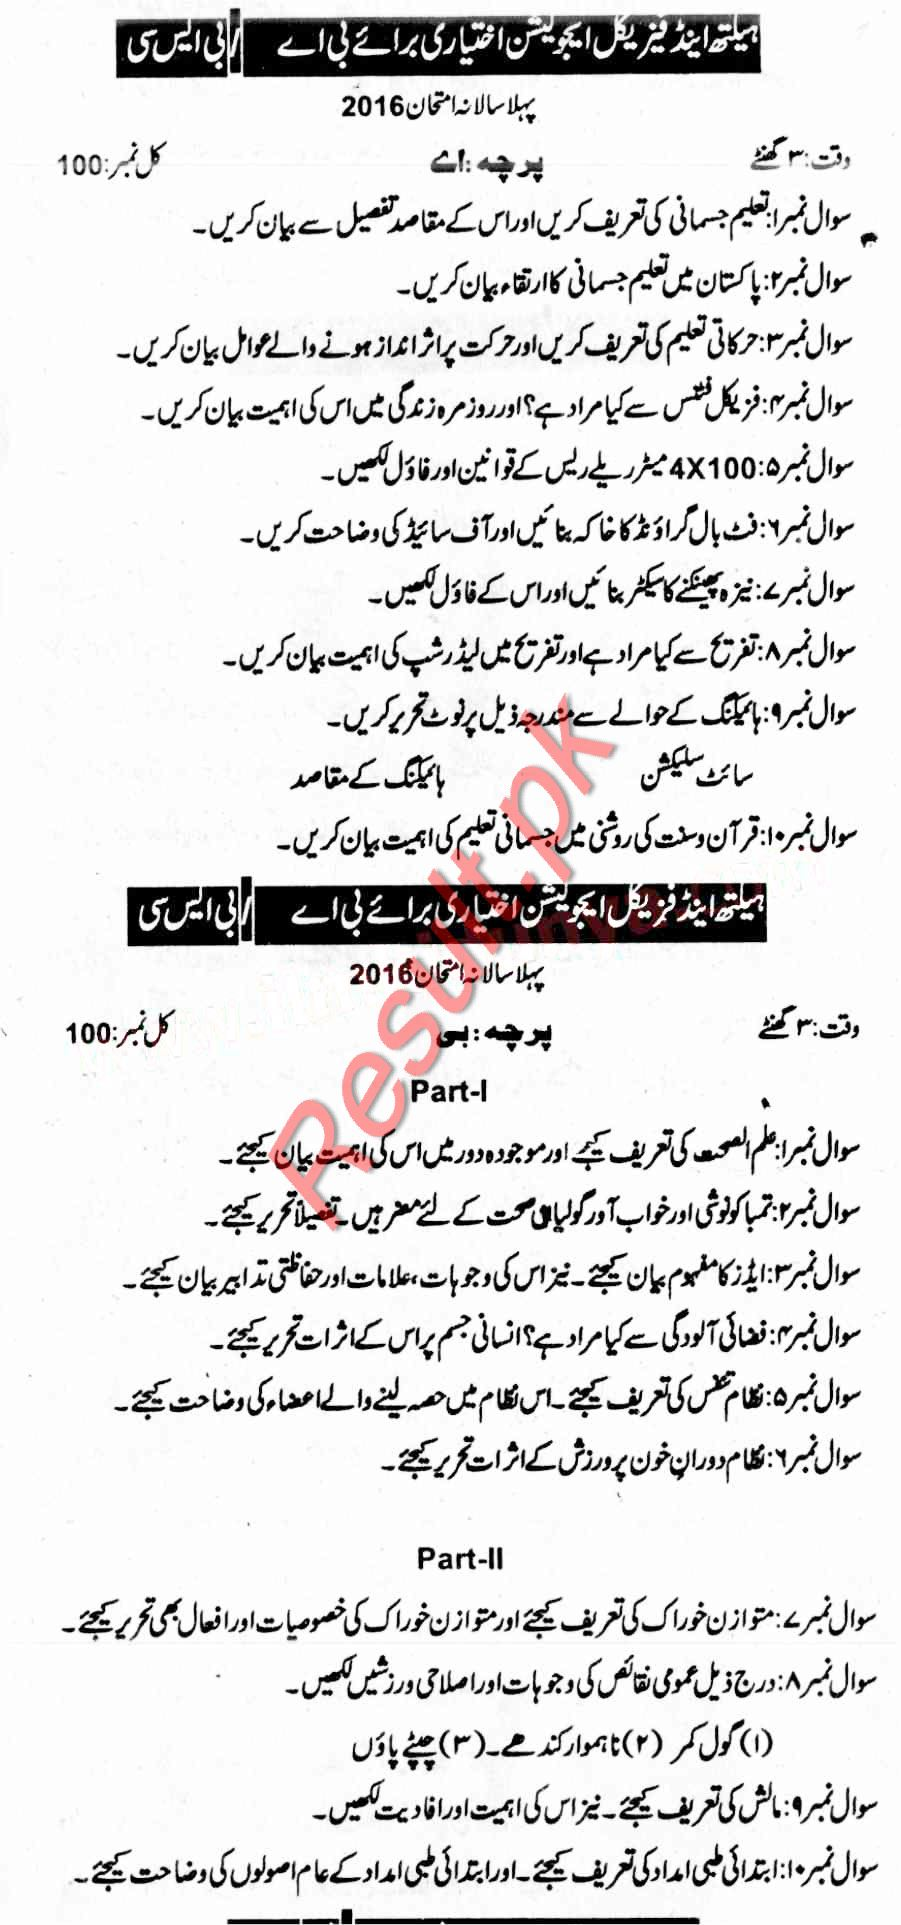 015 Research Paper Educational Past Exam Papers Sargodha University Bsc Health Education Elective Urdu Amazing Full